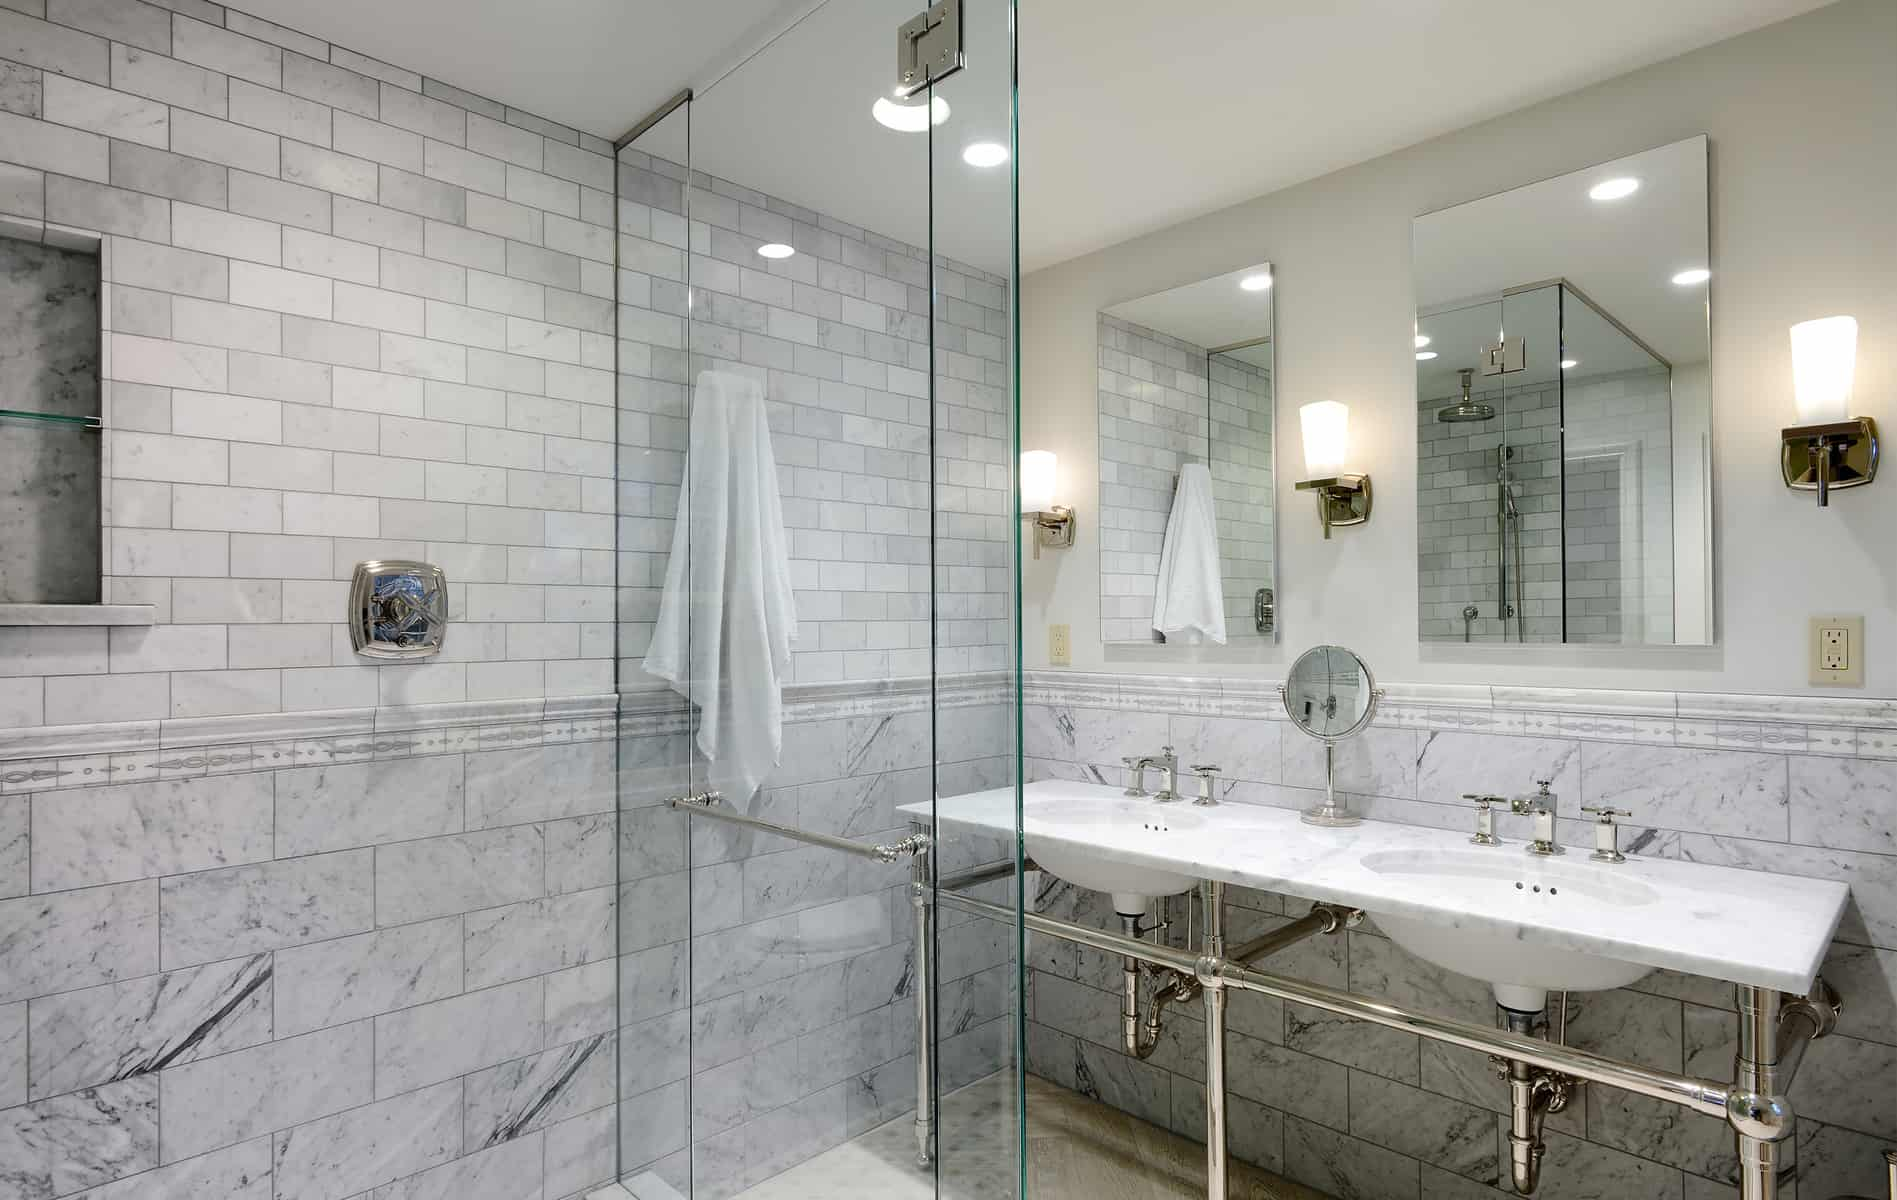 7 Smart Strategies for Bathroom Remodeling